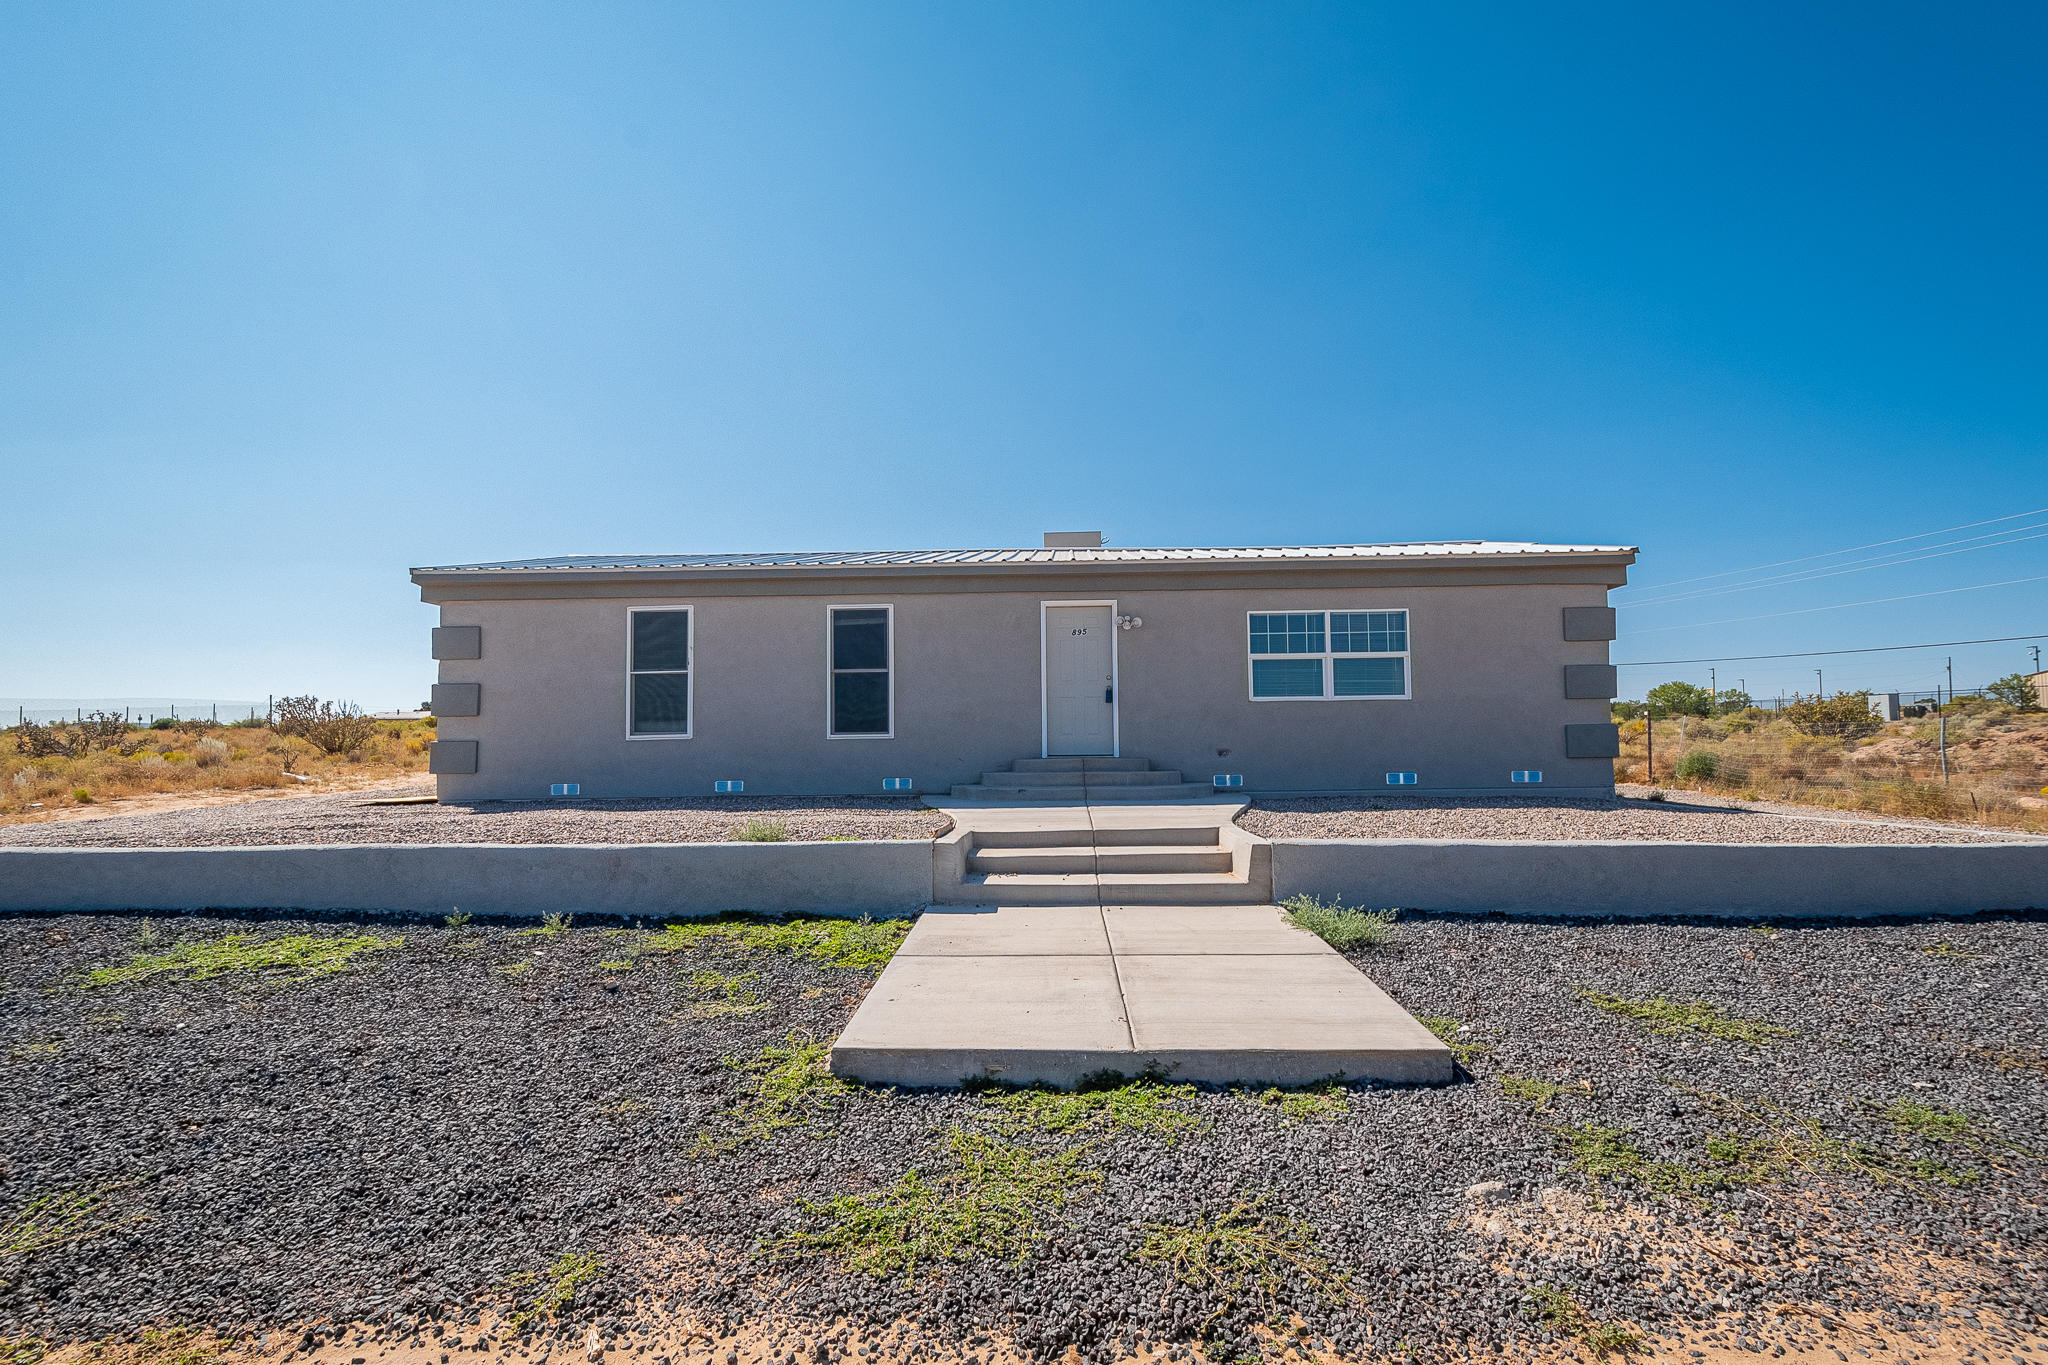 Fully renovated home! New metal roof, laminate flooring, widows and stucco. Here is your chance to buy this home at an affordable price. Come and see this house today!